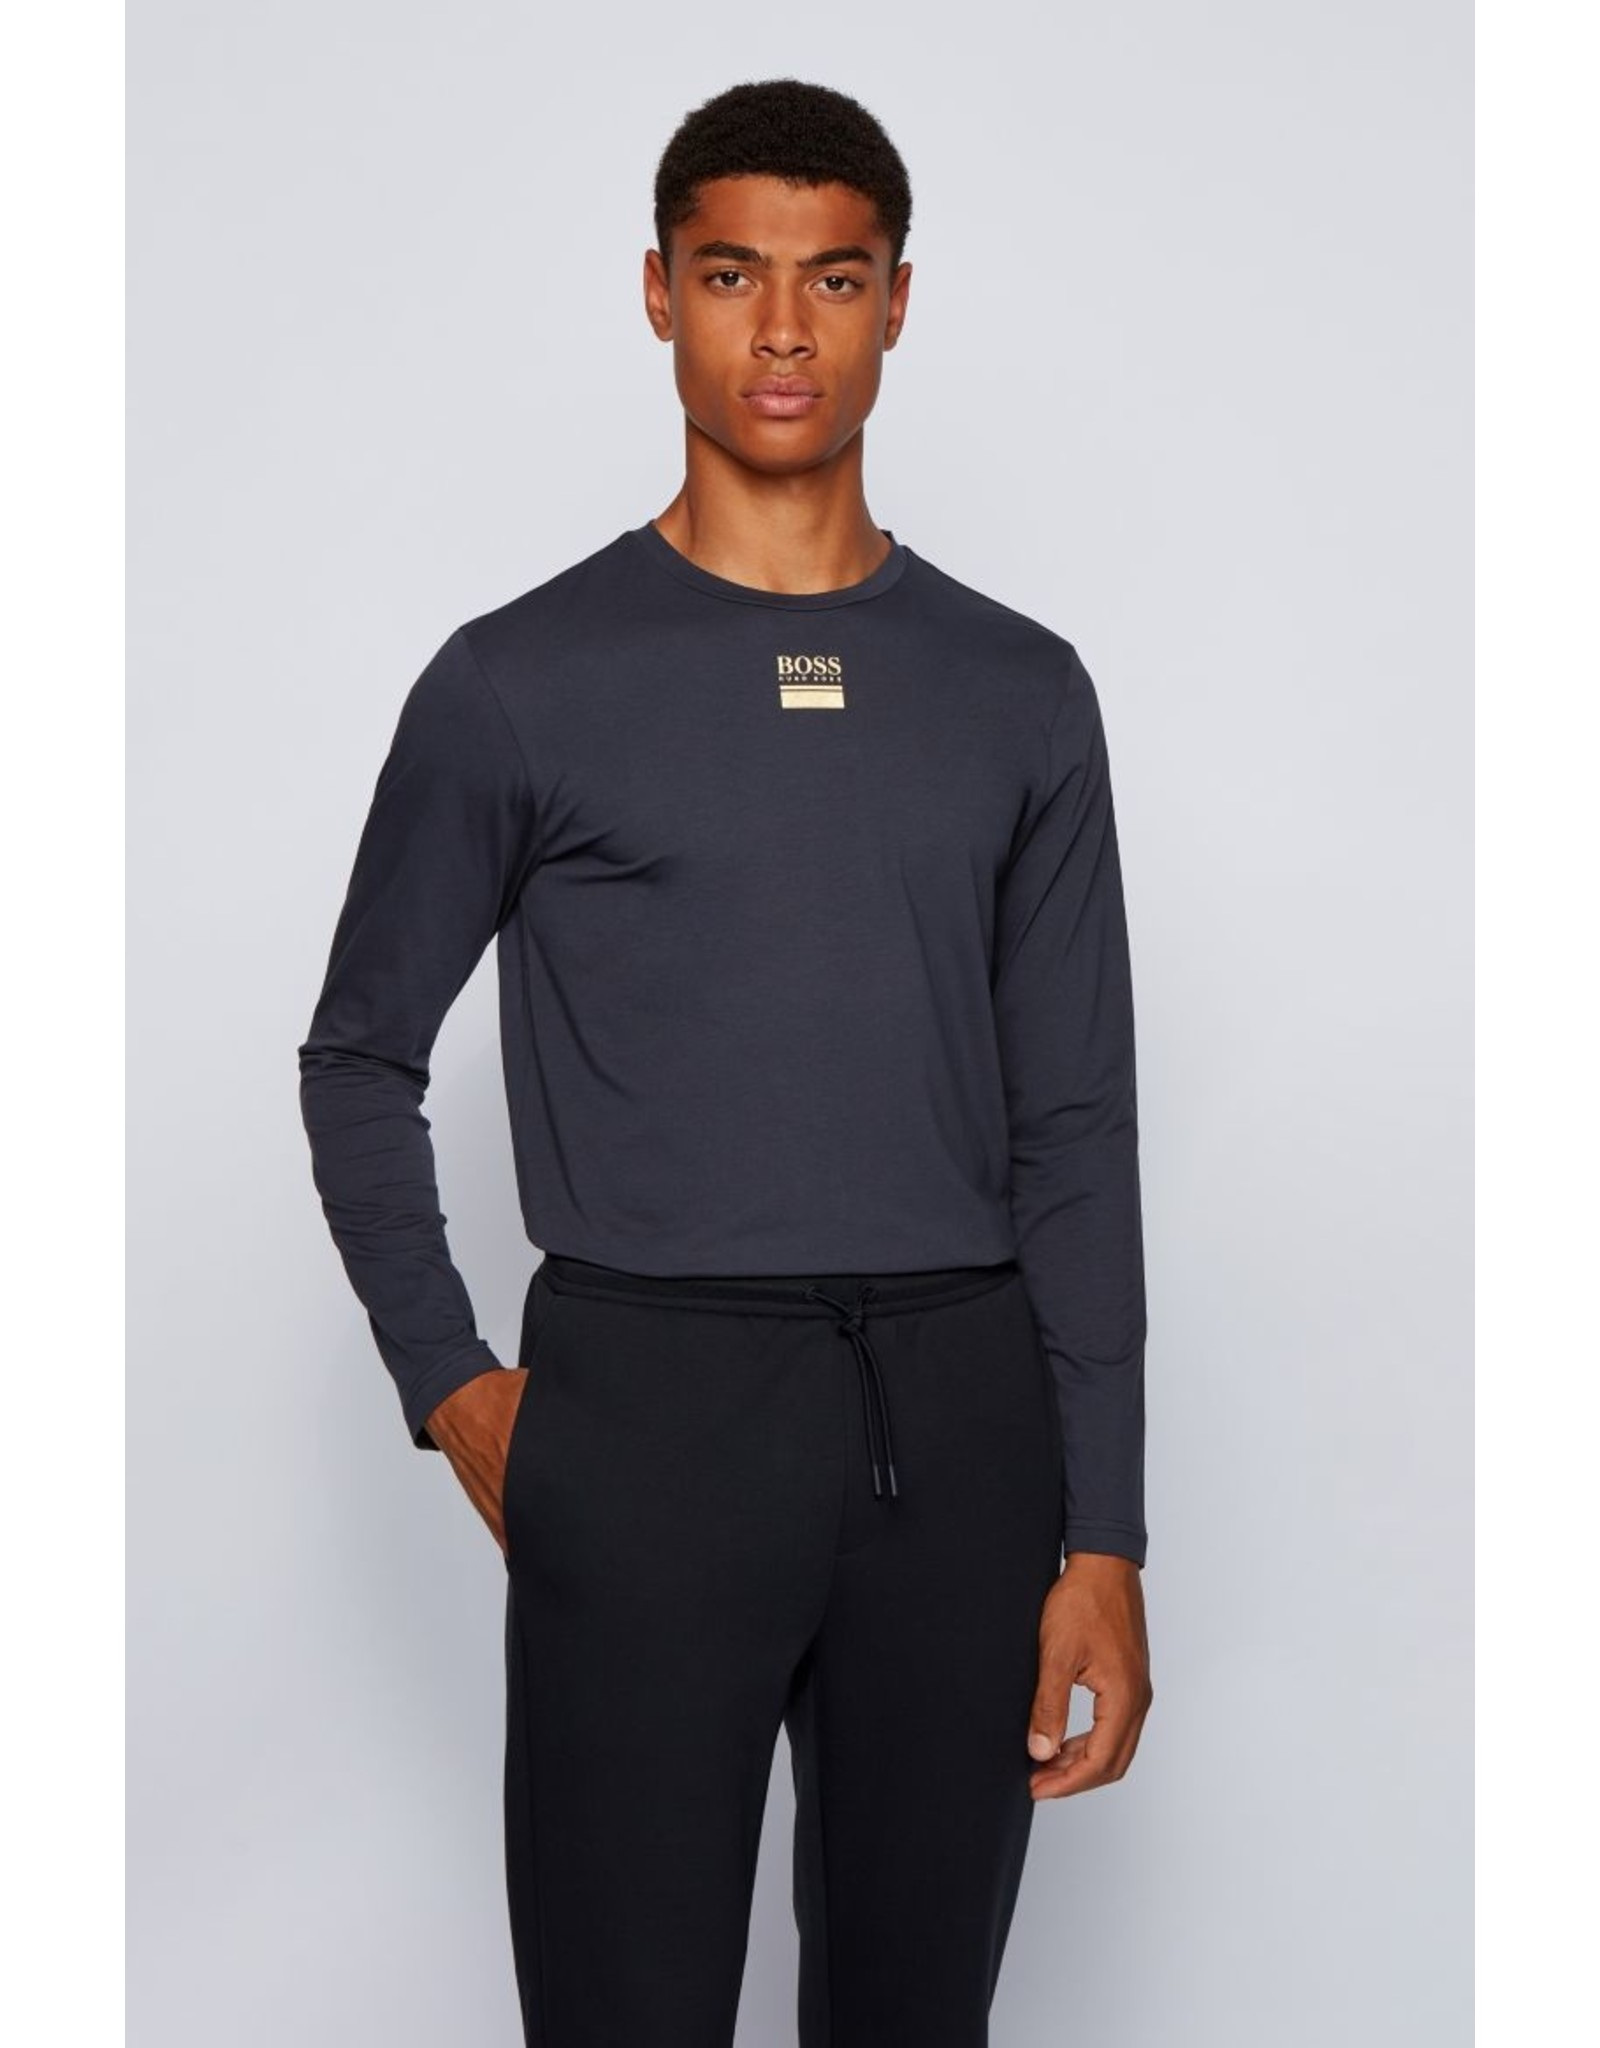 BOSS ATHLEISURE BOSS ATHLEISURE TOGN2